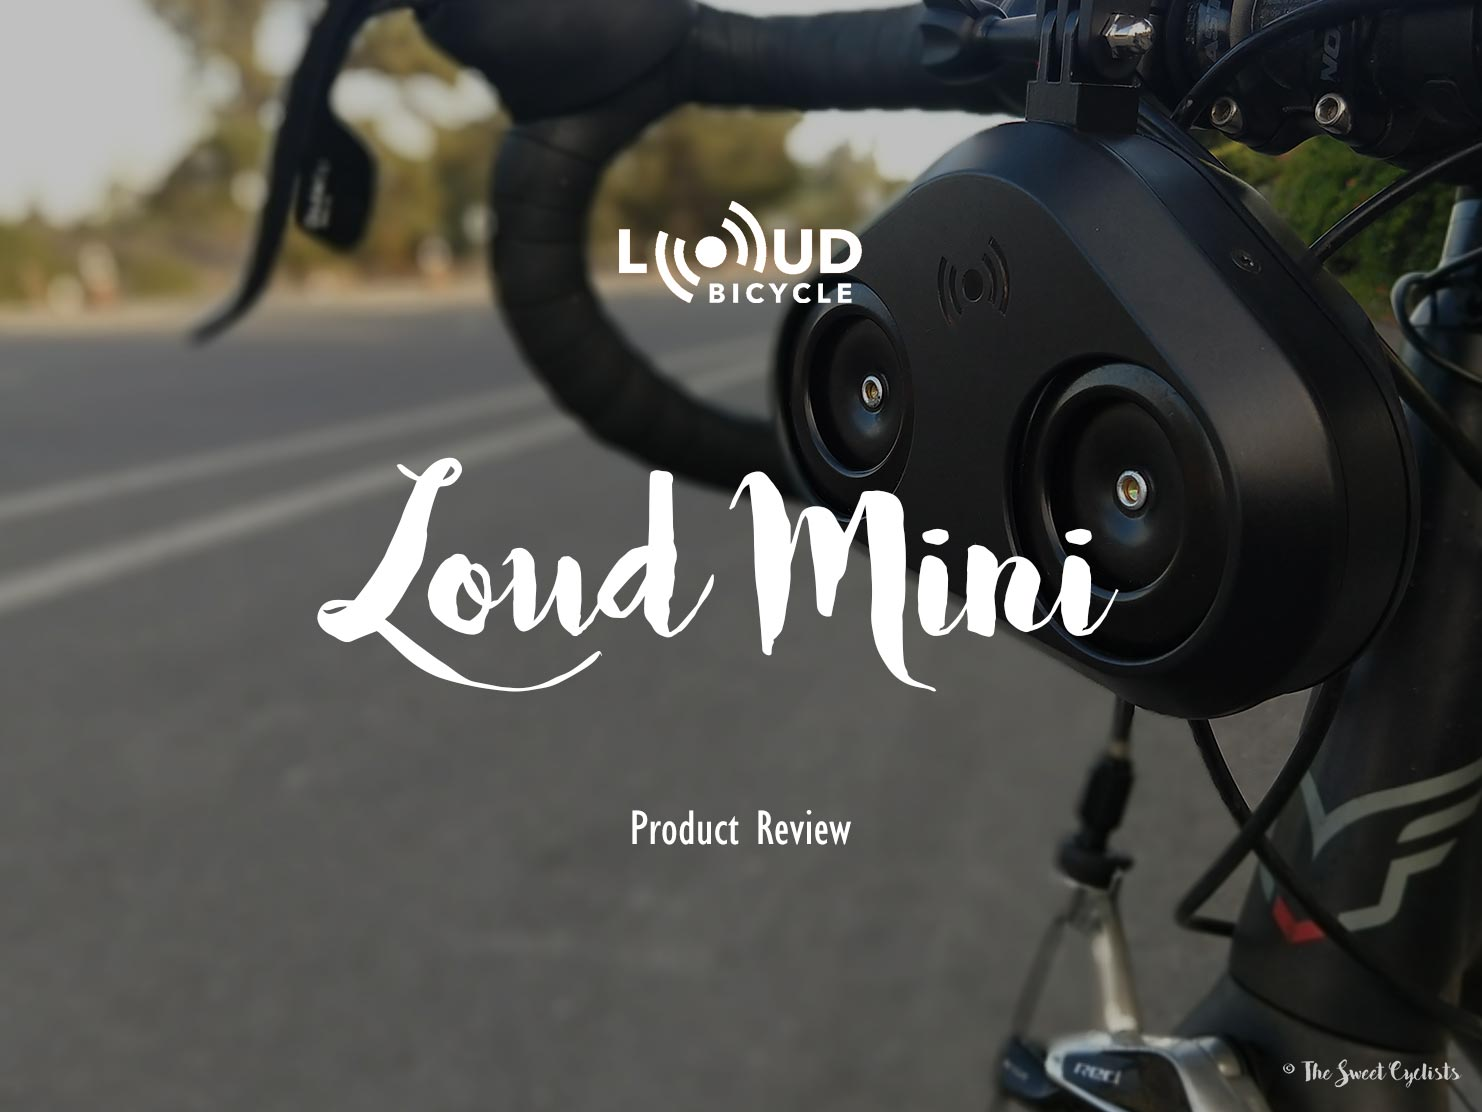 Loud Mini, a 125dB Car Horn for your Bike